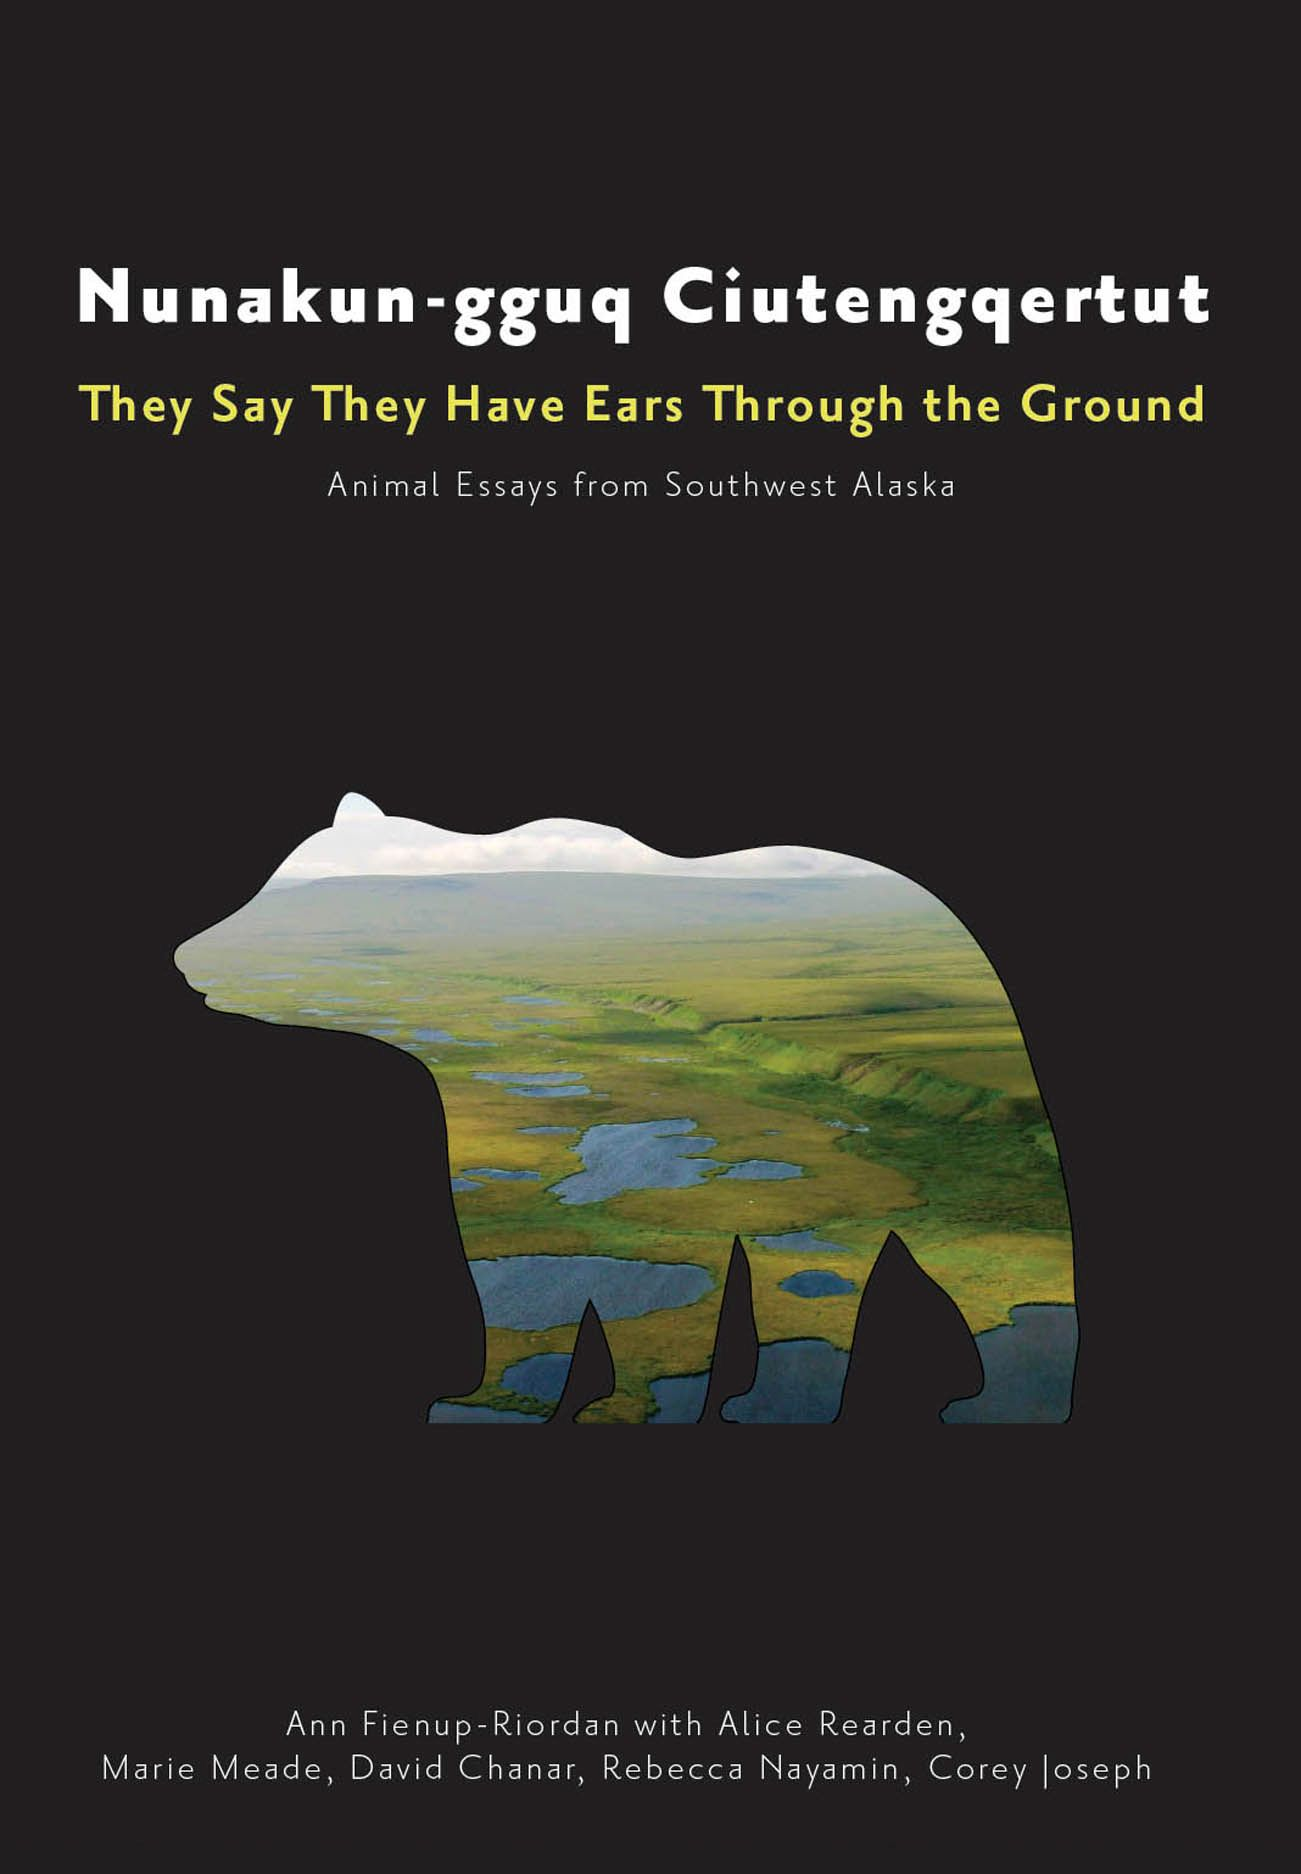 Nunakun-gguq Ciutengqertut/They Say They Have Ears Through the Ground: Animal Essays from Southwest Alaska